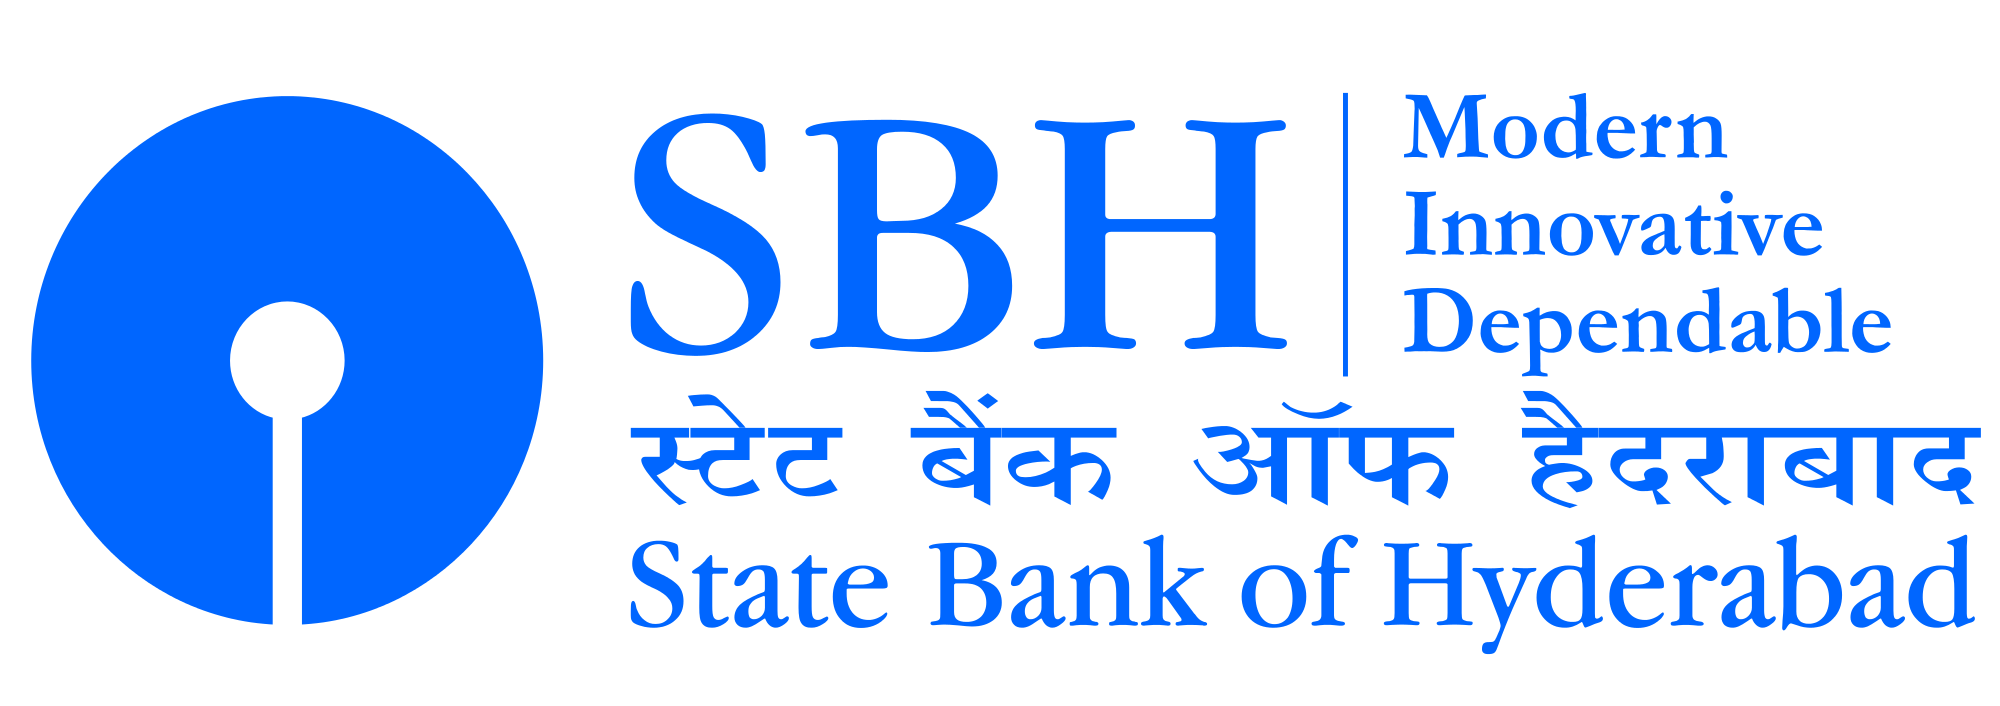 Check State Bank of Hyderabad IFSC and MICR Codes Here @ Rupeenomics.com